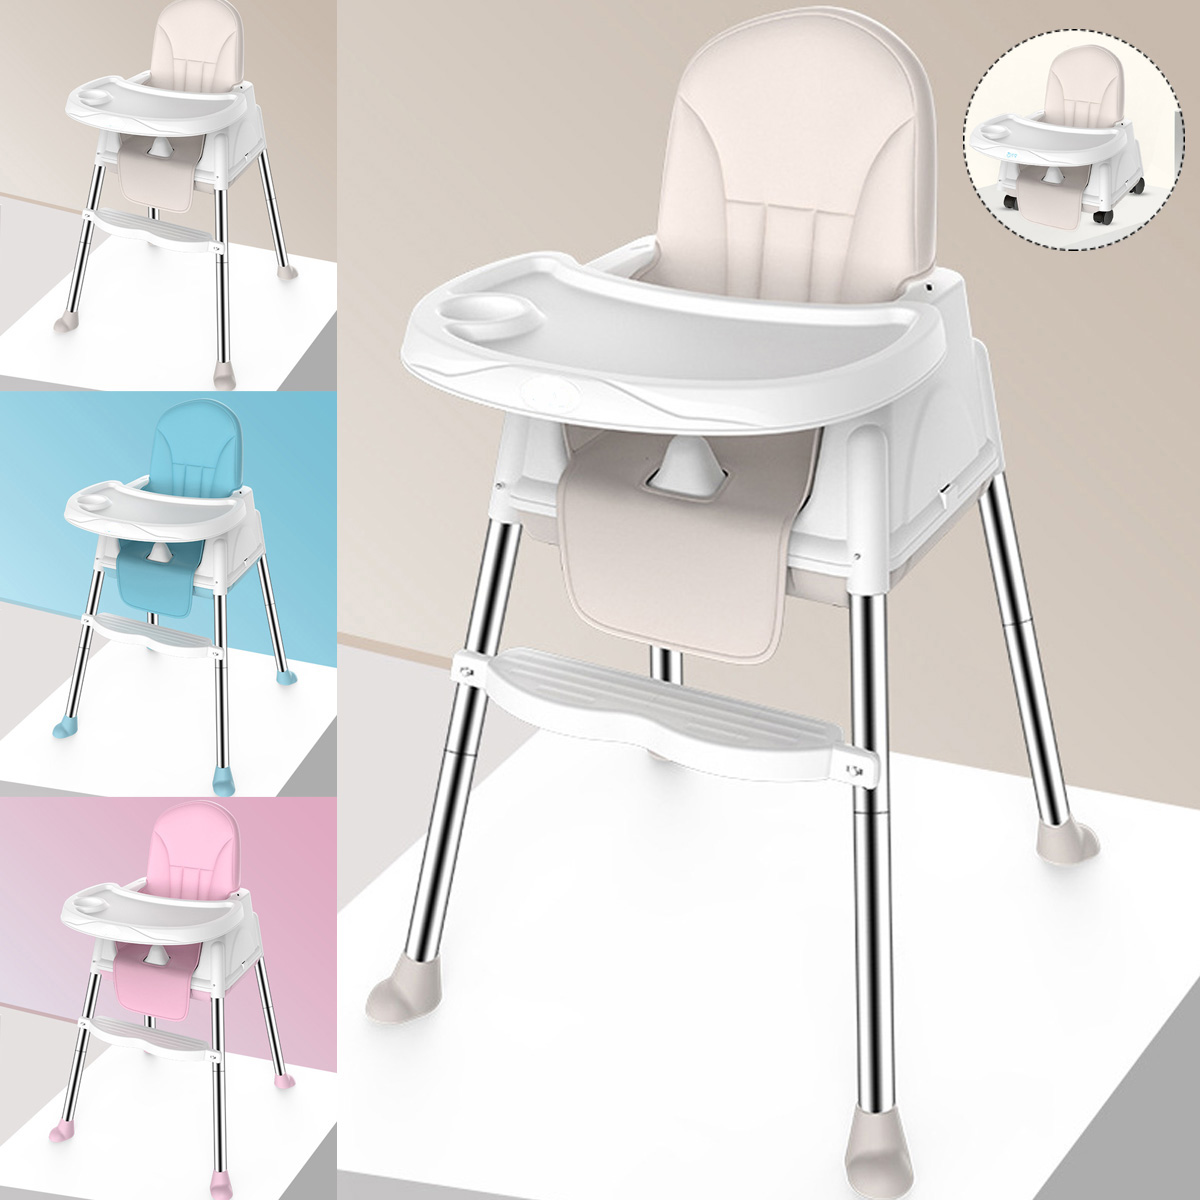 Foldable Portable Kids Baby High Chair 6 - 36 Months Wheeled Seat Cushion Small Household Childrens Chair Supplies